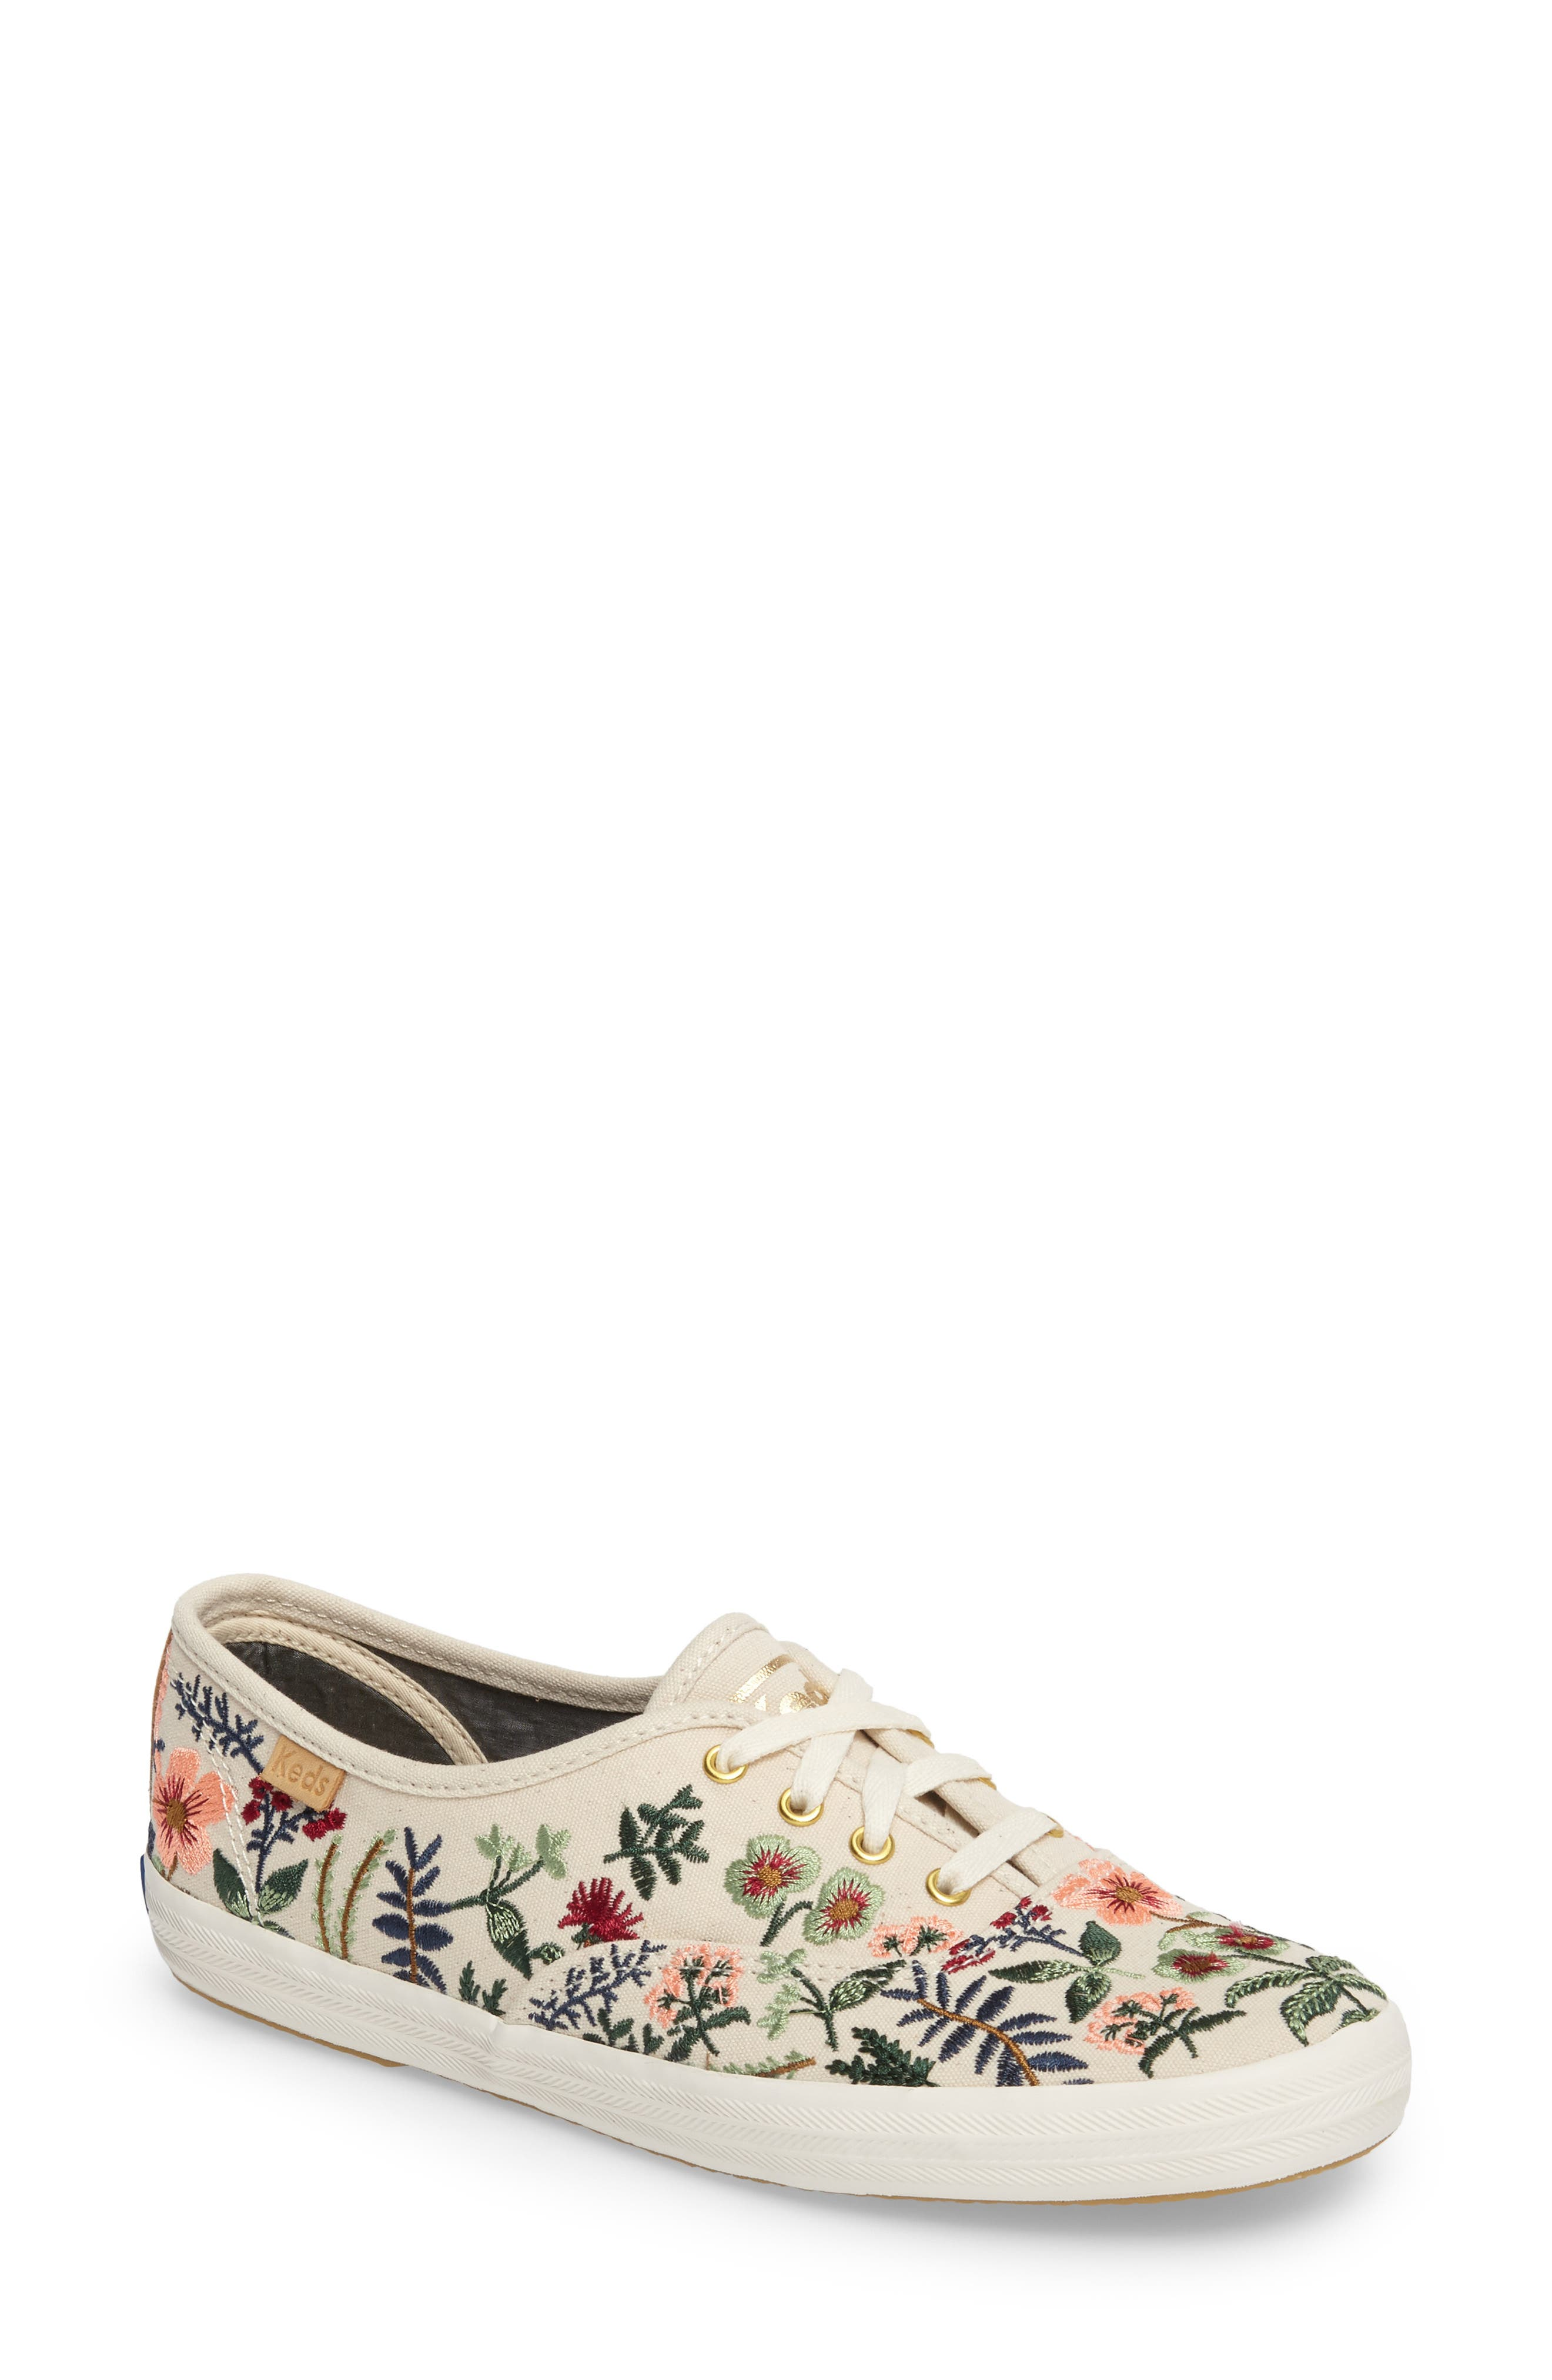 Keds® x Rifle Paper Co. Herb Garden Embroidered Sneaker (Women)